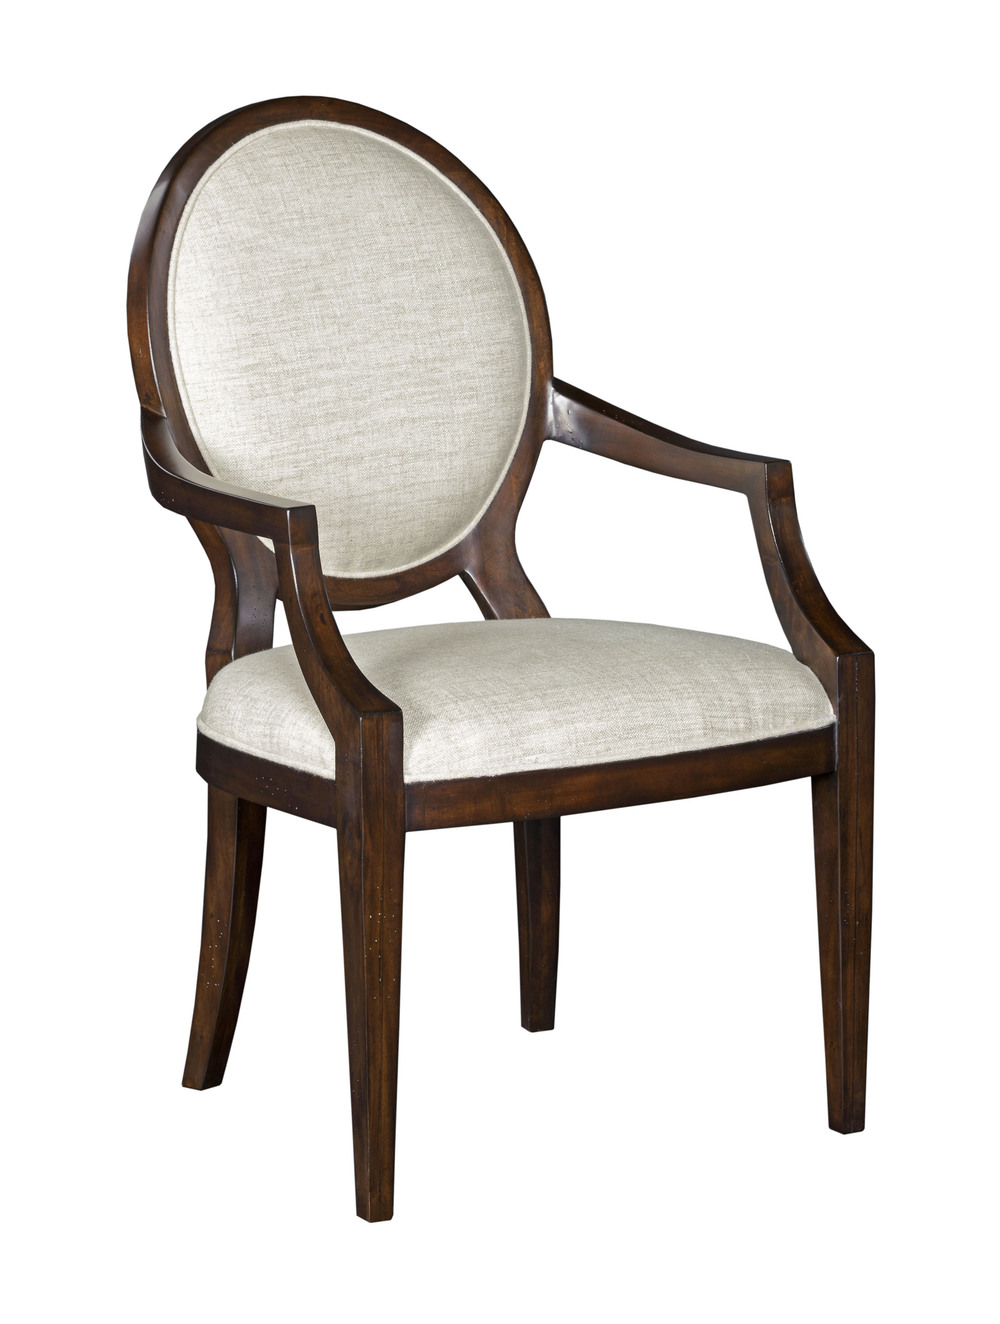 Woodbridge Furniture Company - Oval Back Arm Chair